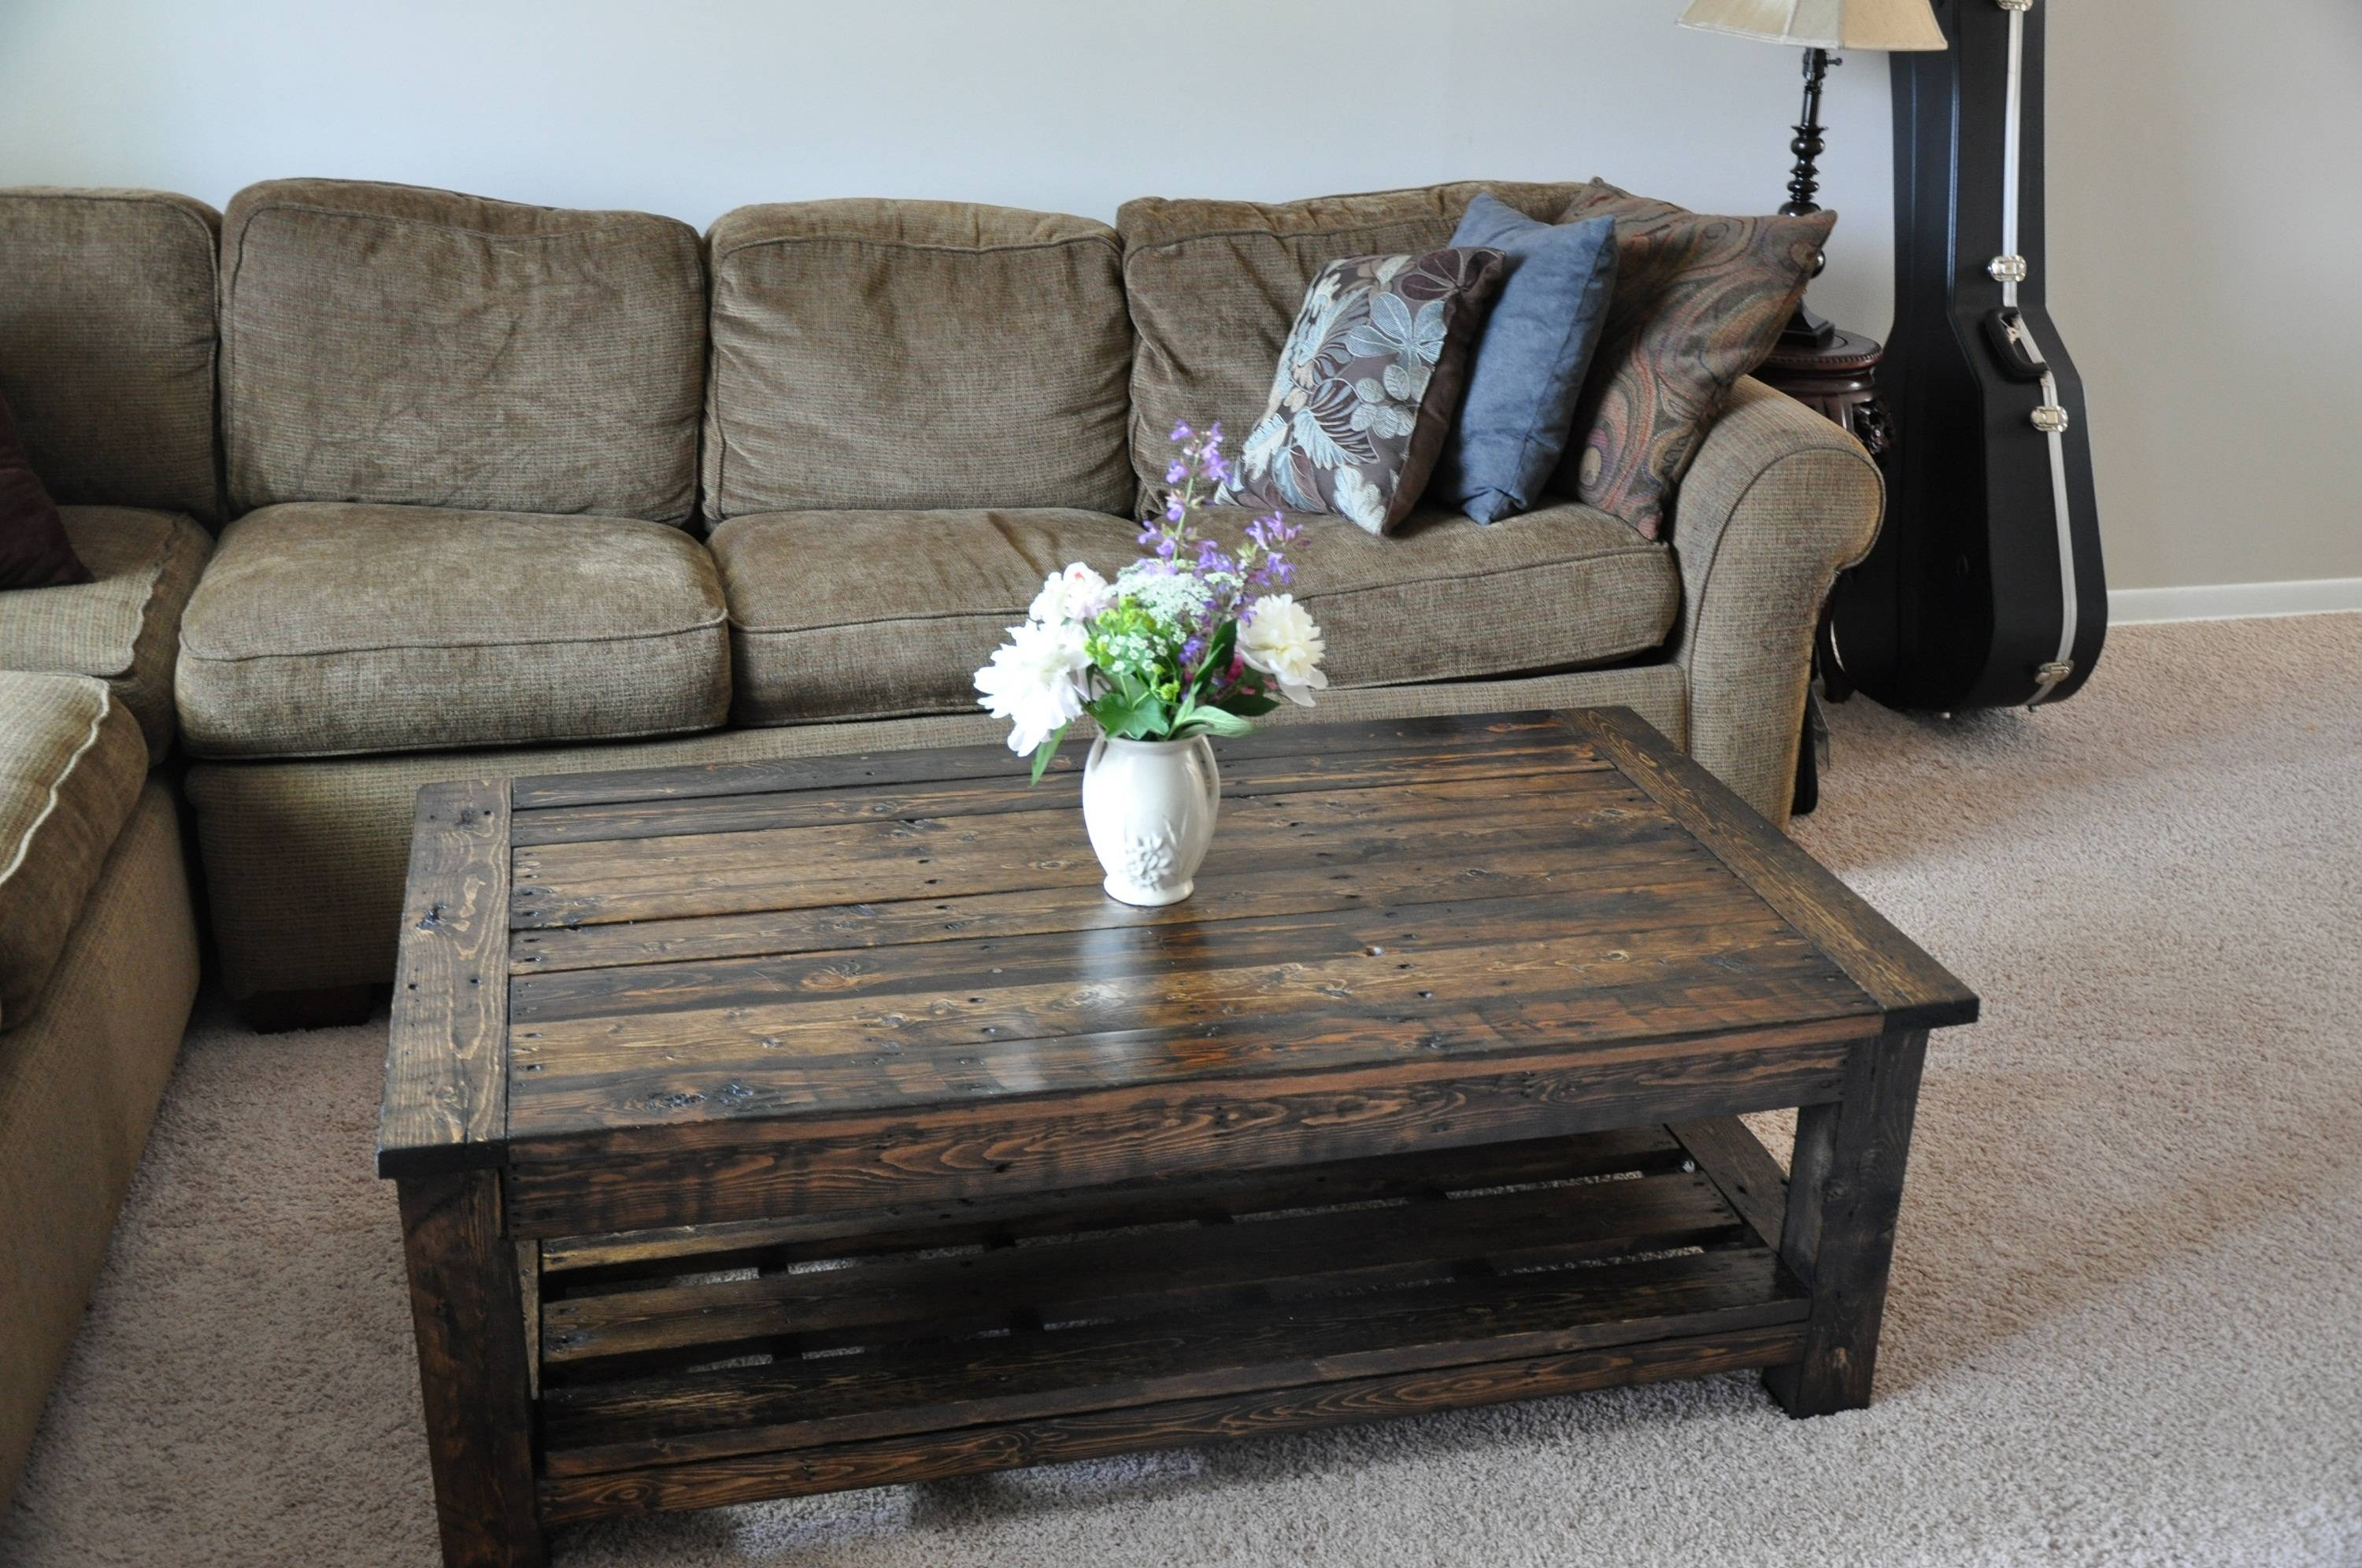 Coffee Table: Marvelous Pallet Wood Coffee Table Designs Pallets with regard to Dark Wood Coffee Table Storages (Image 12 of 30)